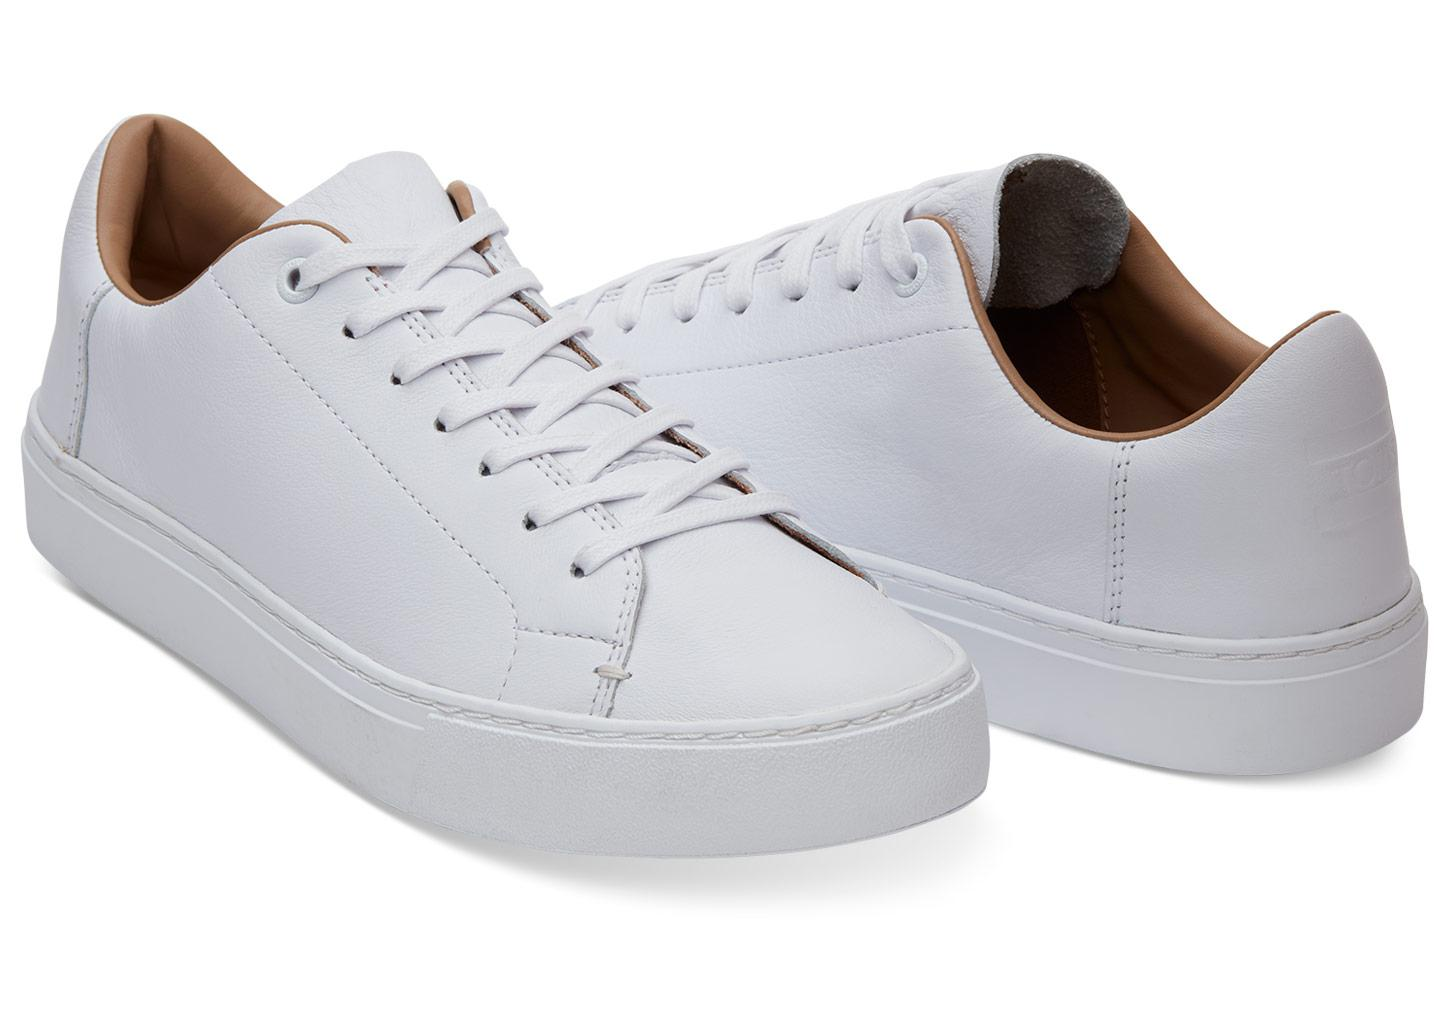 a323c598122 TOMS Optic White Leather Men s Lenox Sneakers in White for Men - Lyst